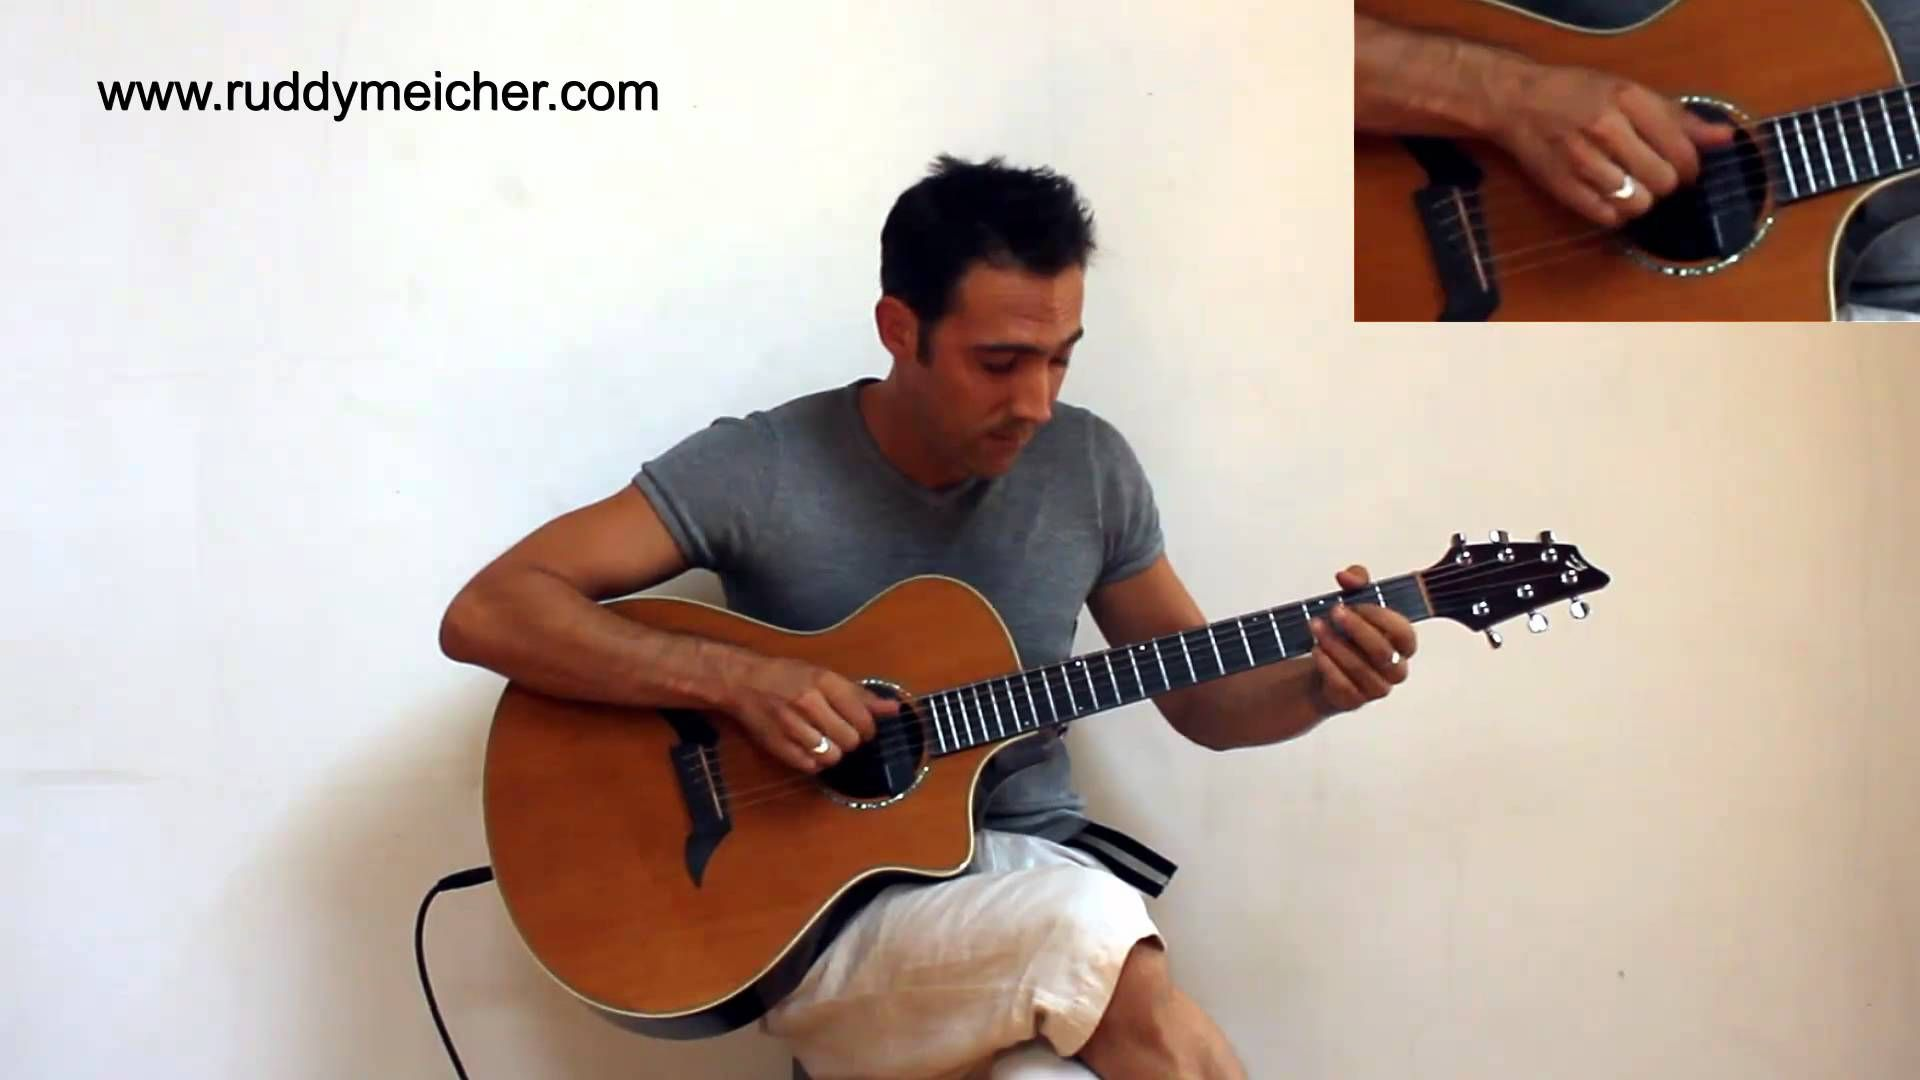 Call Me Maybe Carly Rae Jepsen Fingerstyle Ruddy Meicher